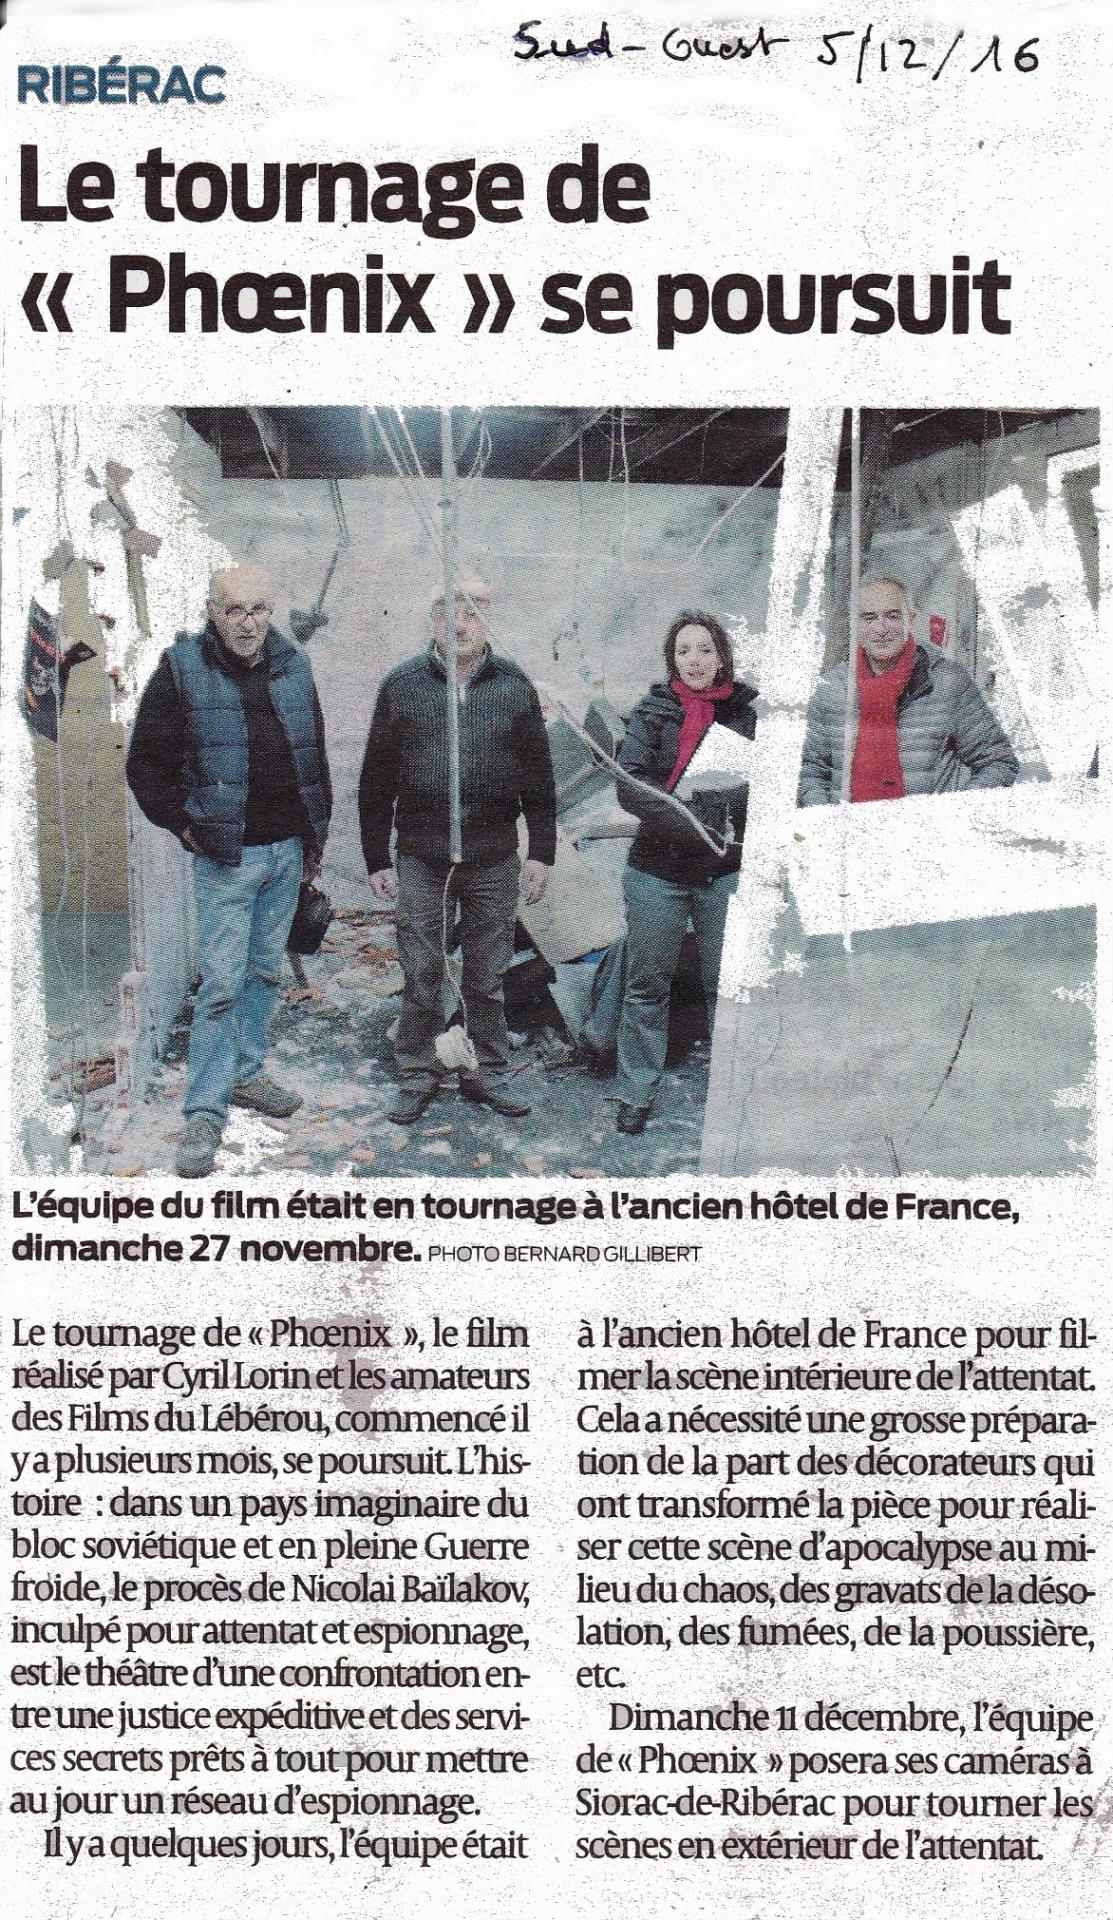 161205 sud ouest